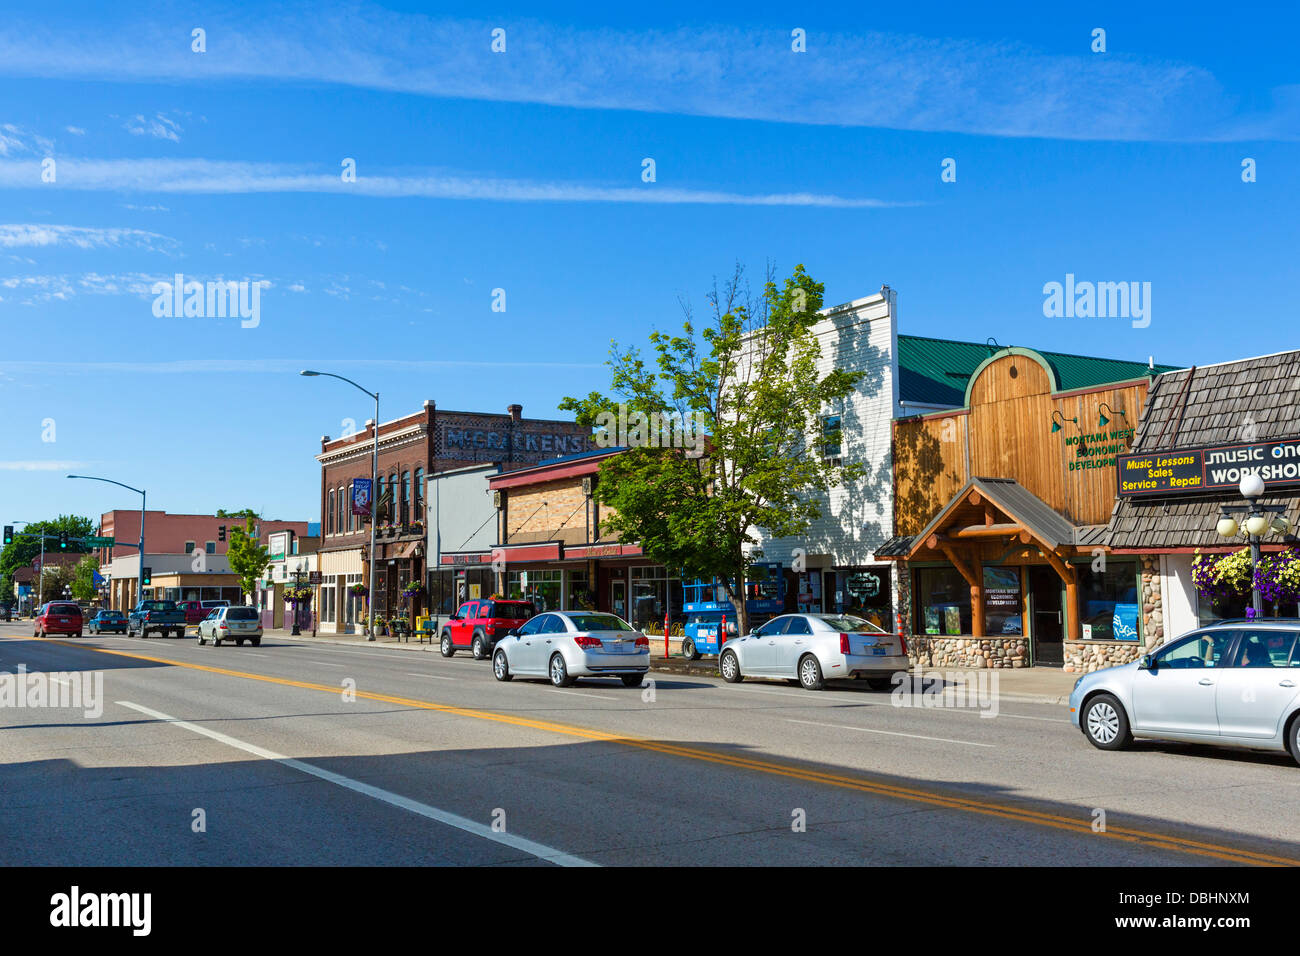 Rue principale de Kalispell, Montana, USA Photo Stock